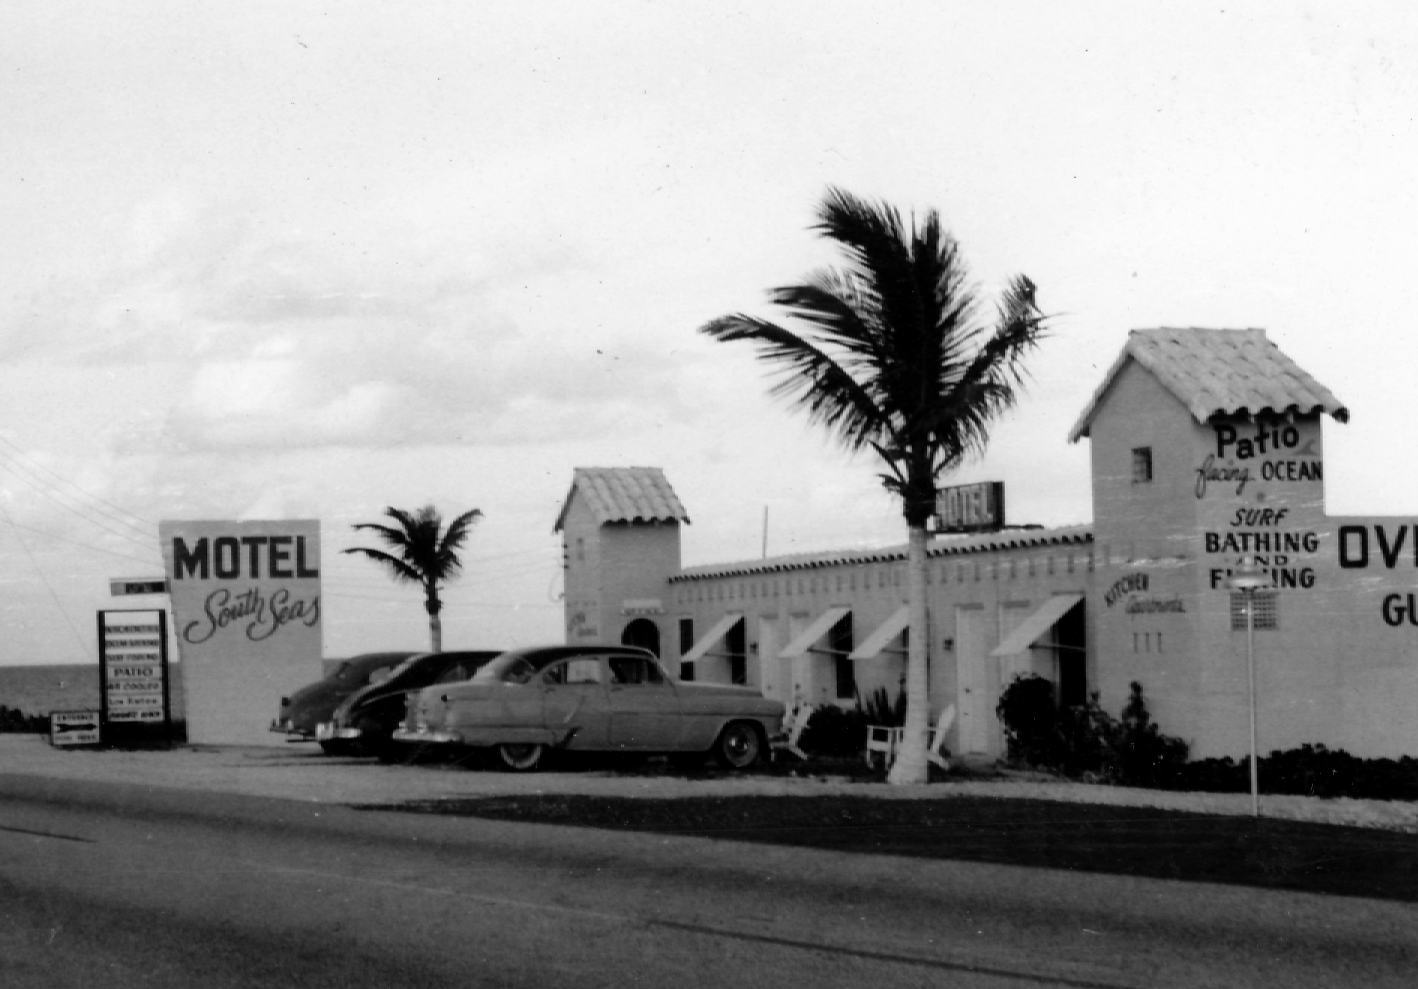 The South Seas Molel about 1957 in Jupiter